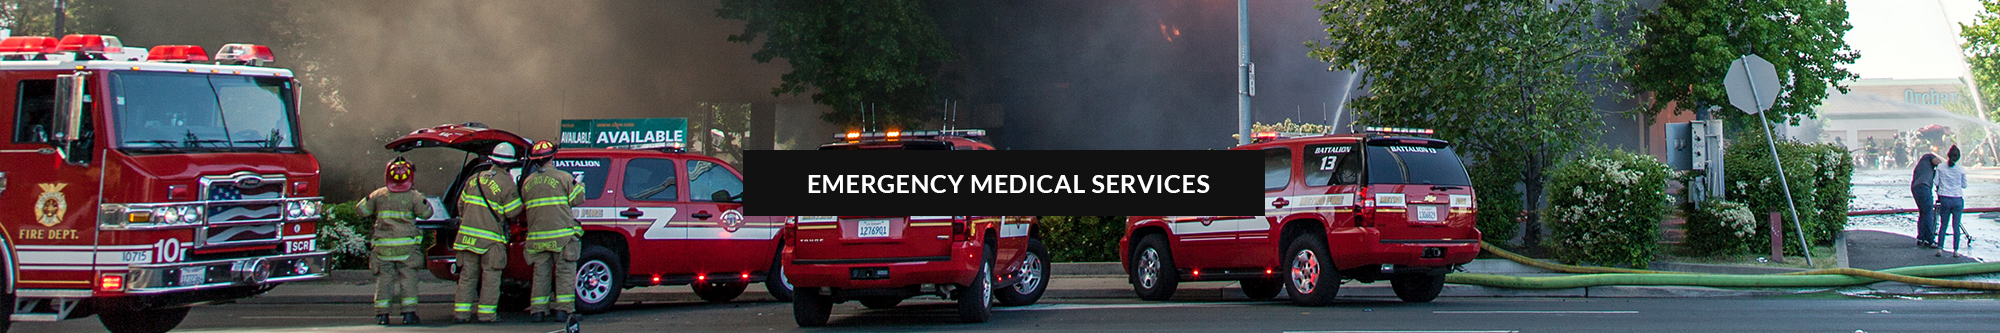 Emergency Medical Services - Niagara County